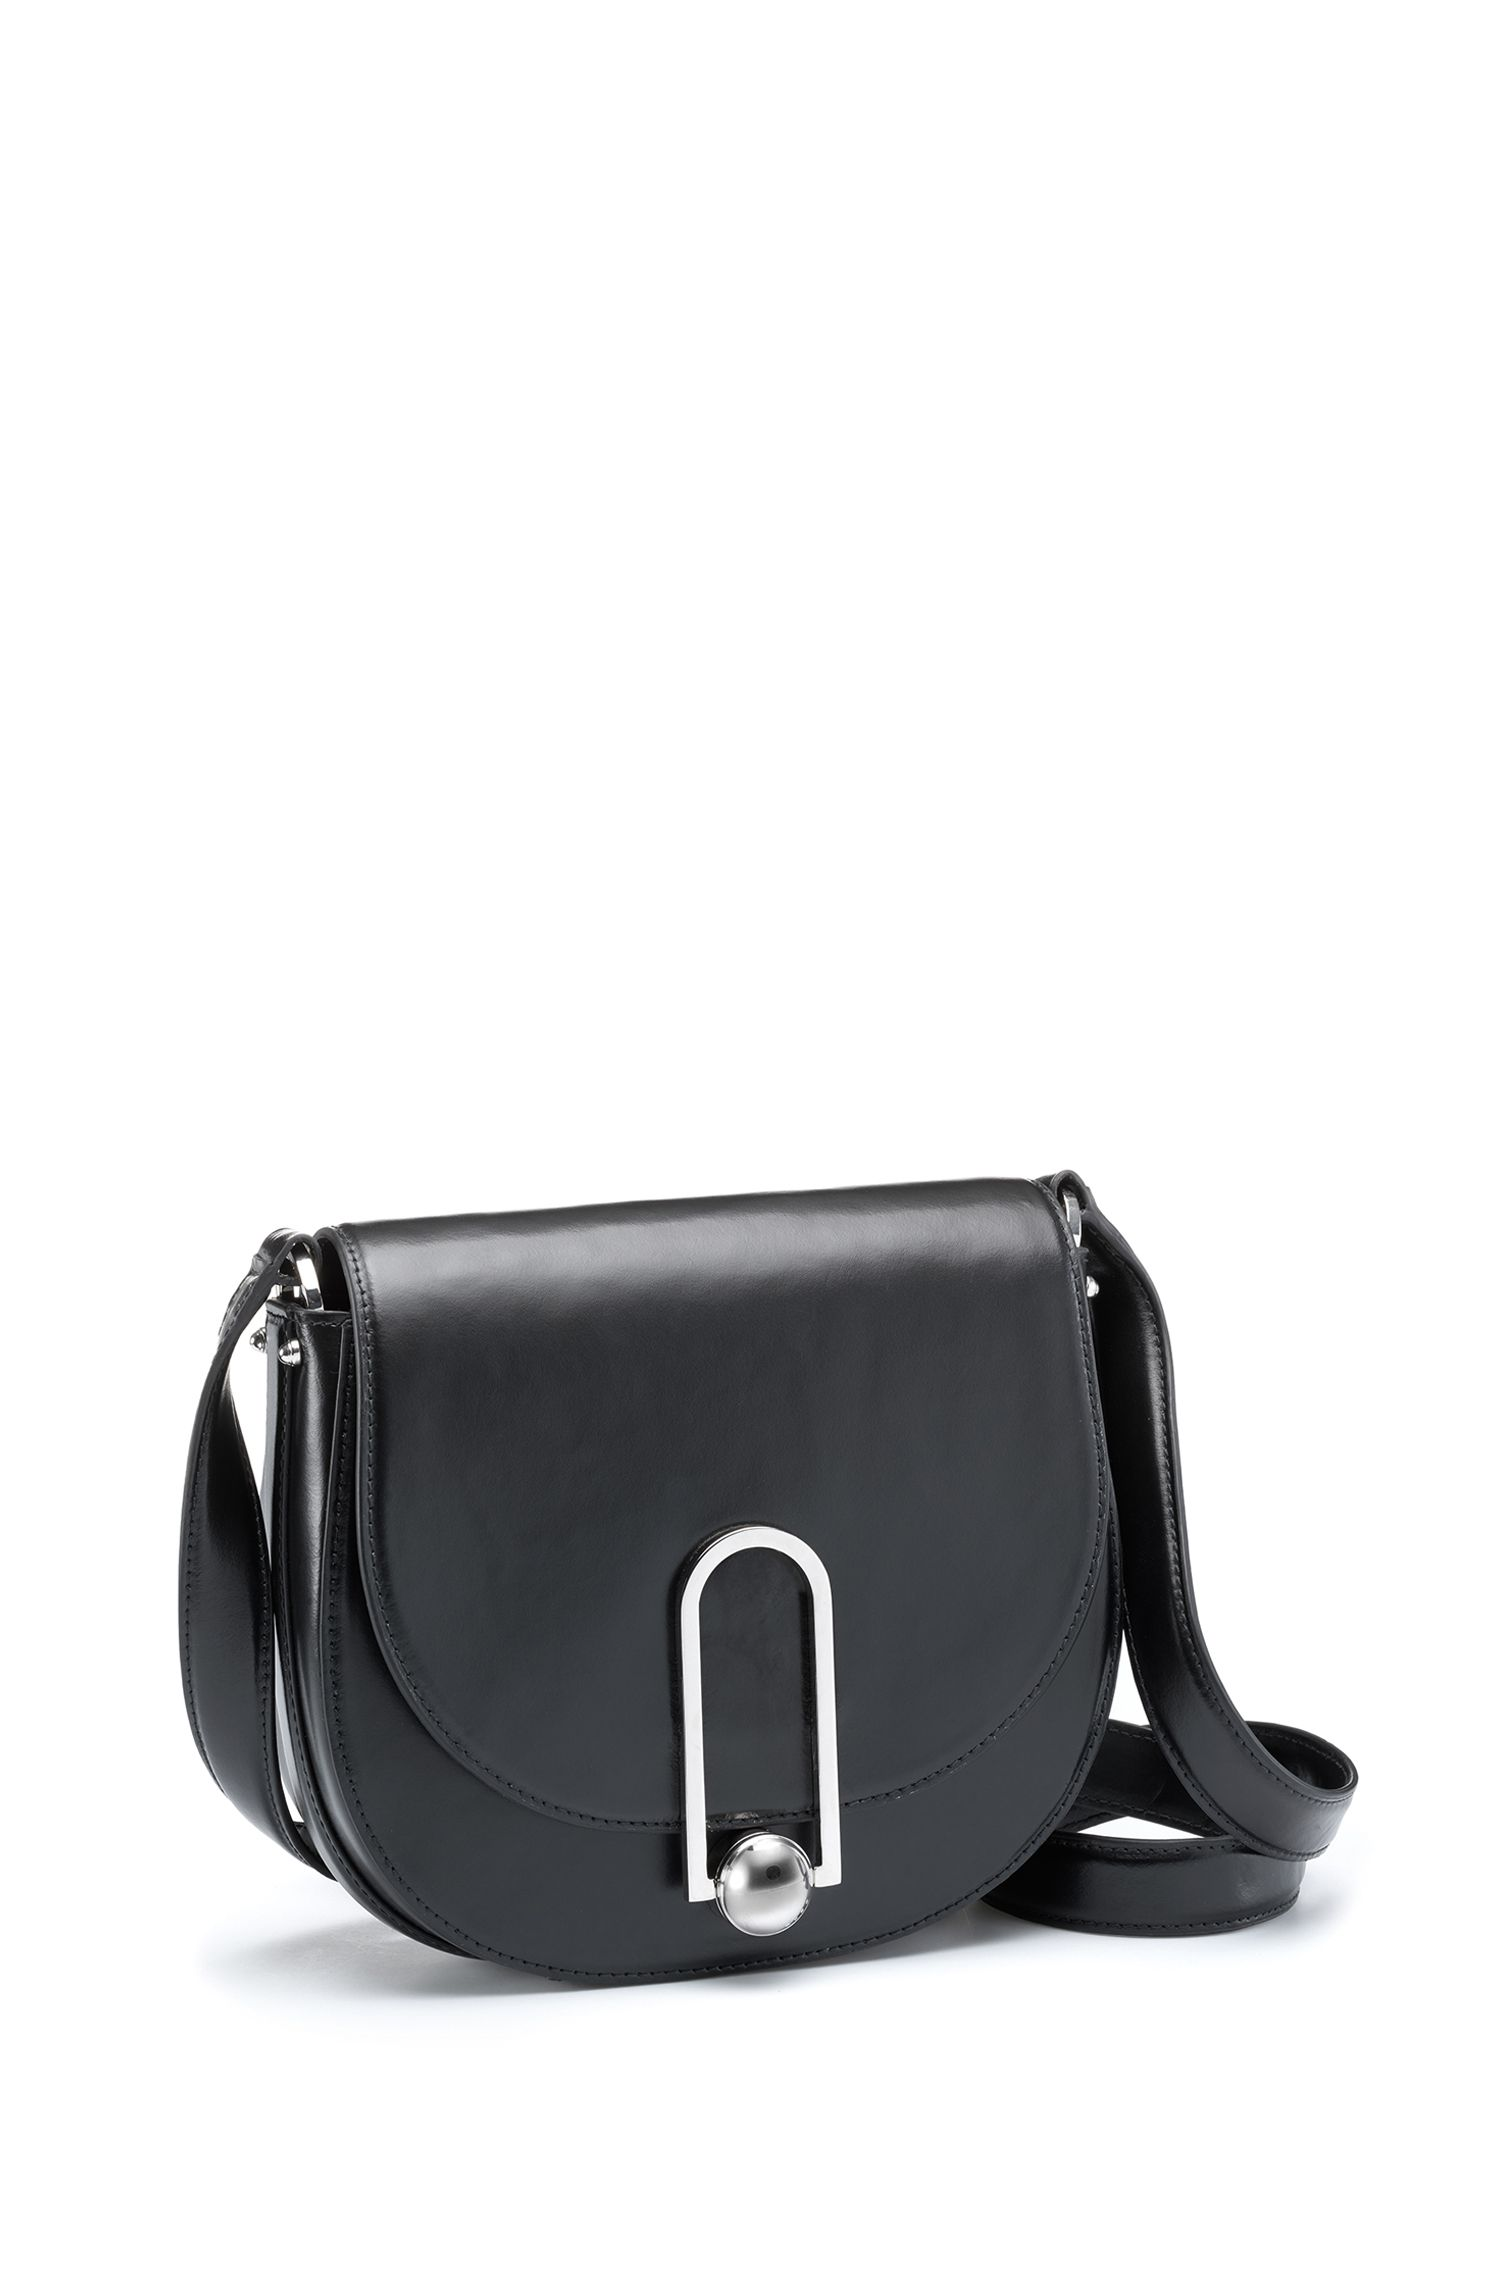 Smooth leather saddle bag with polished hardware